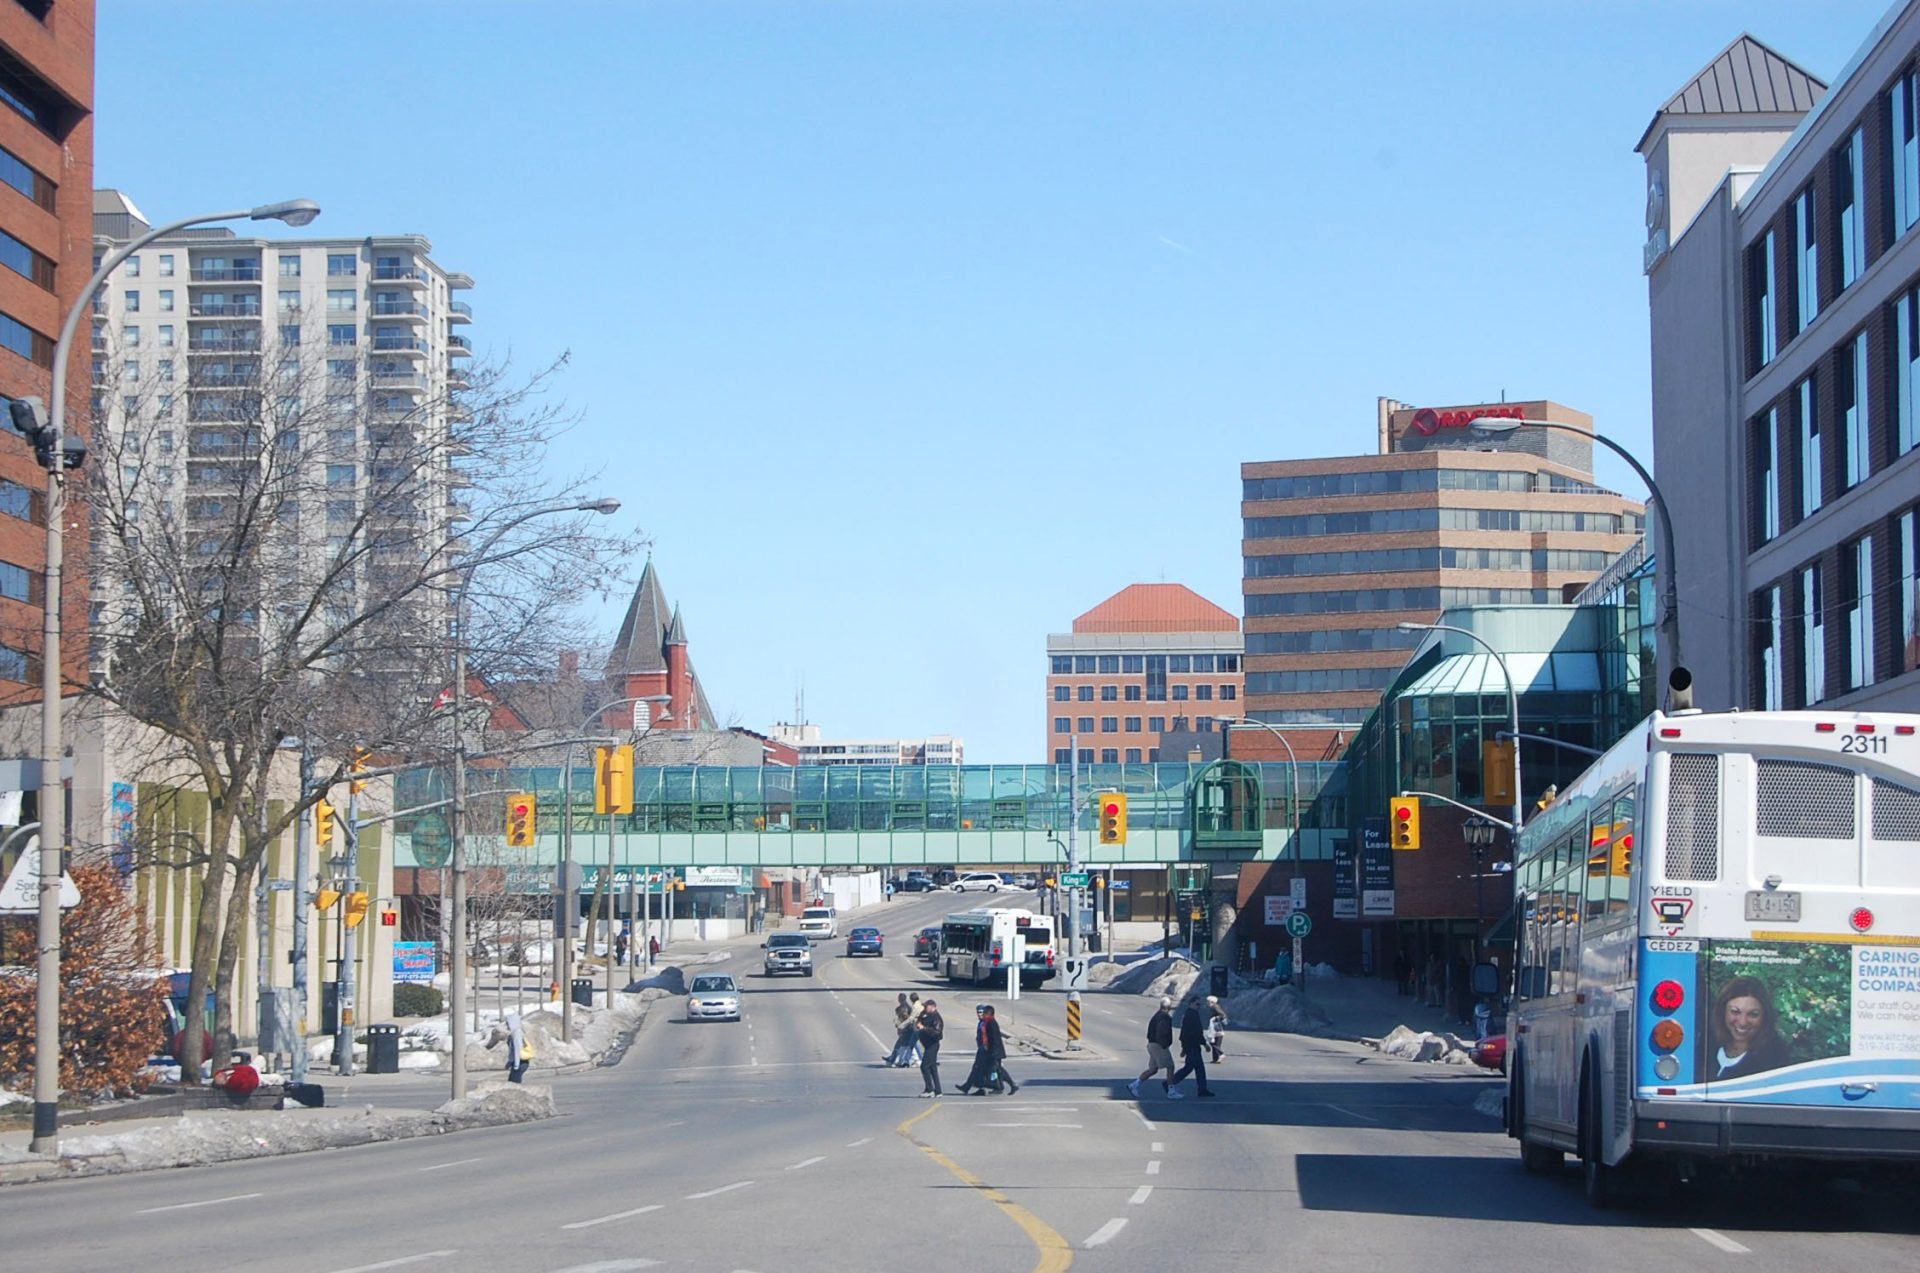 Downtown Kitchener, Ontario